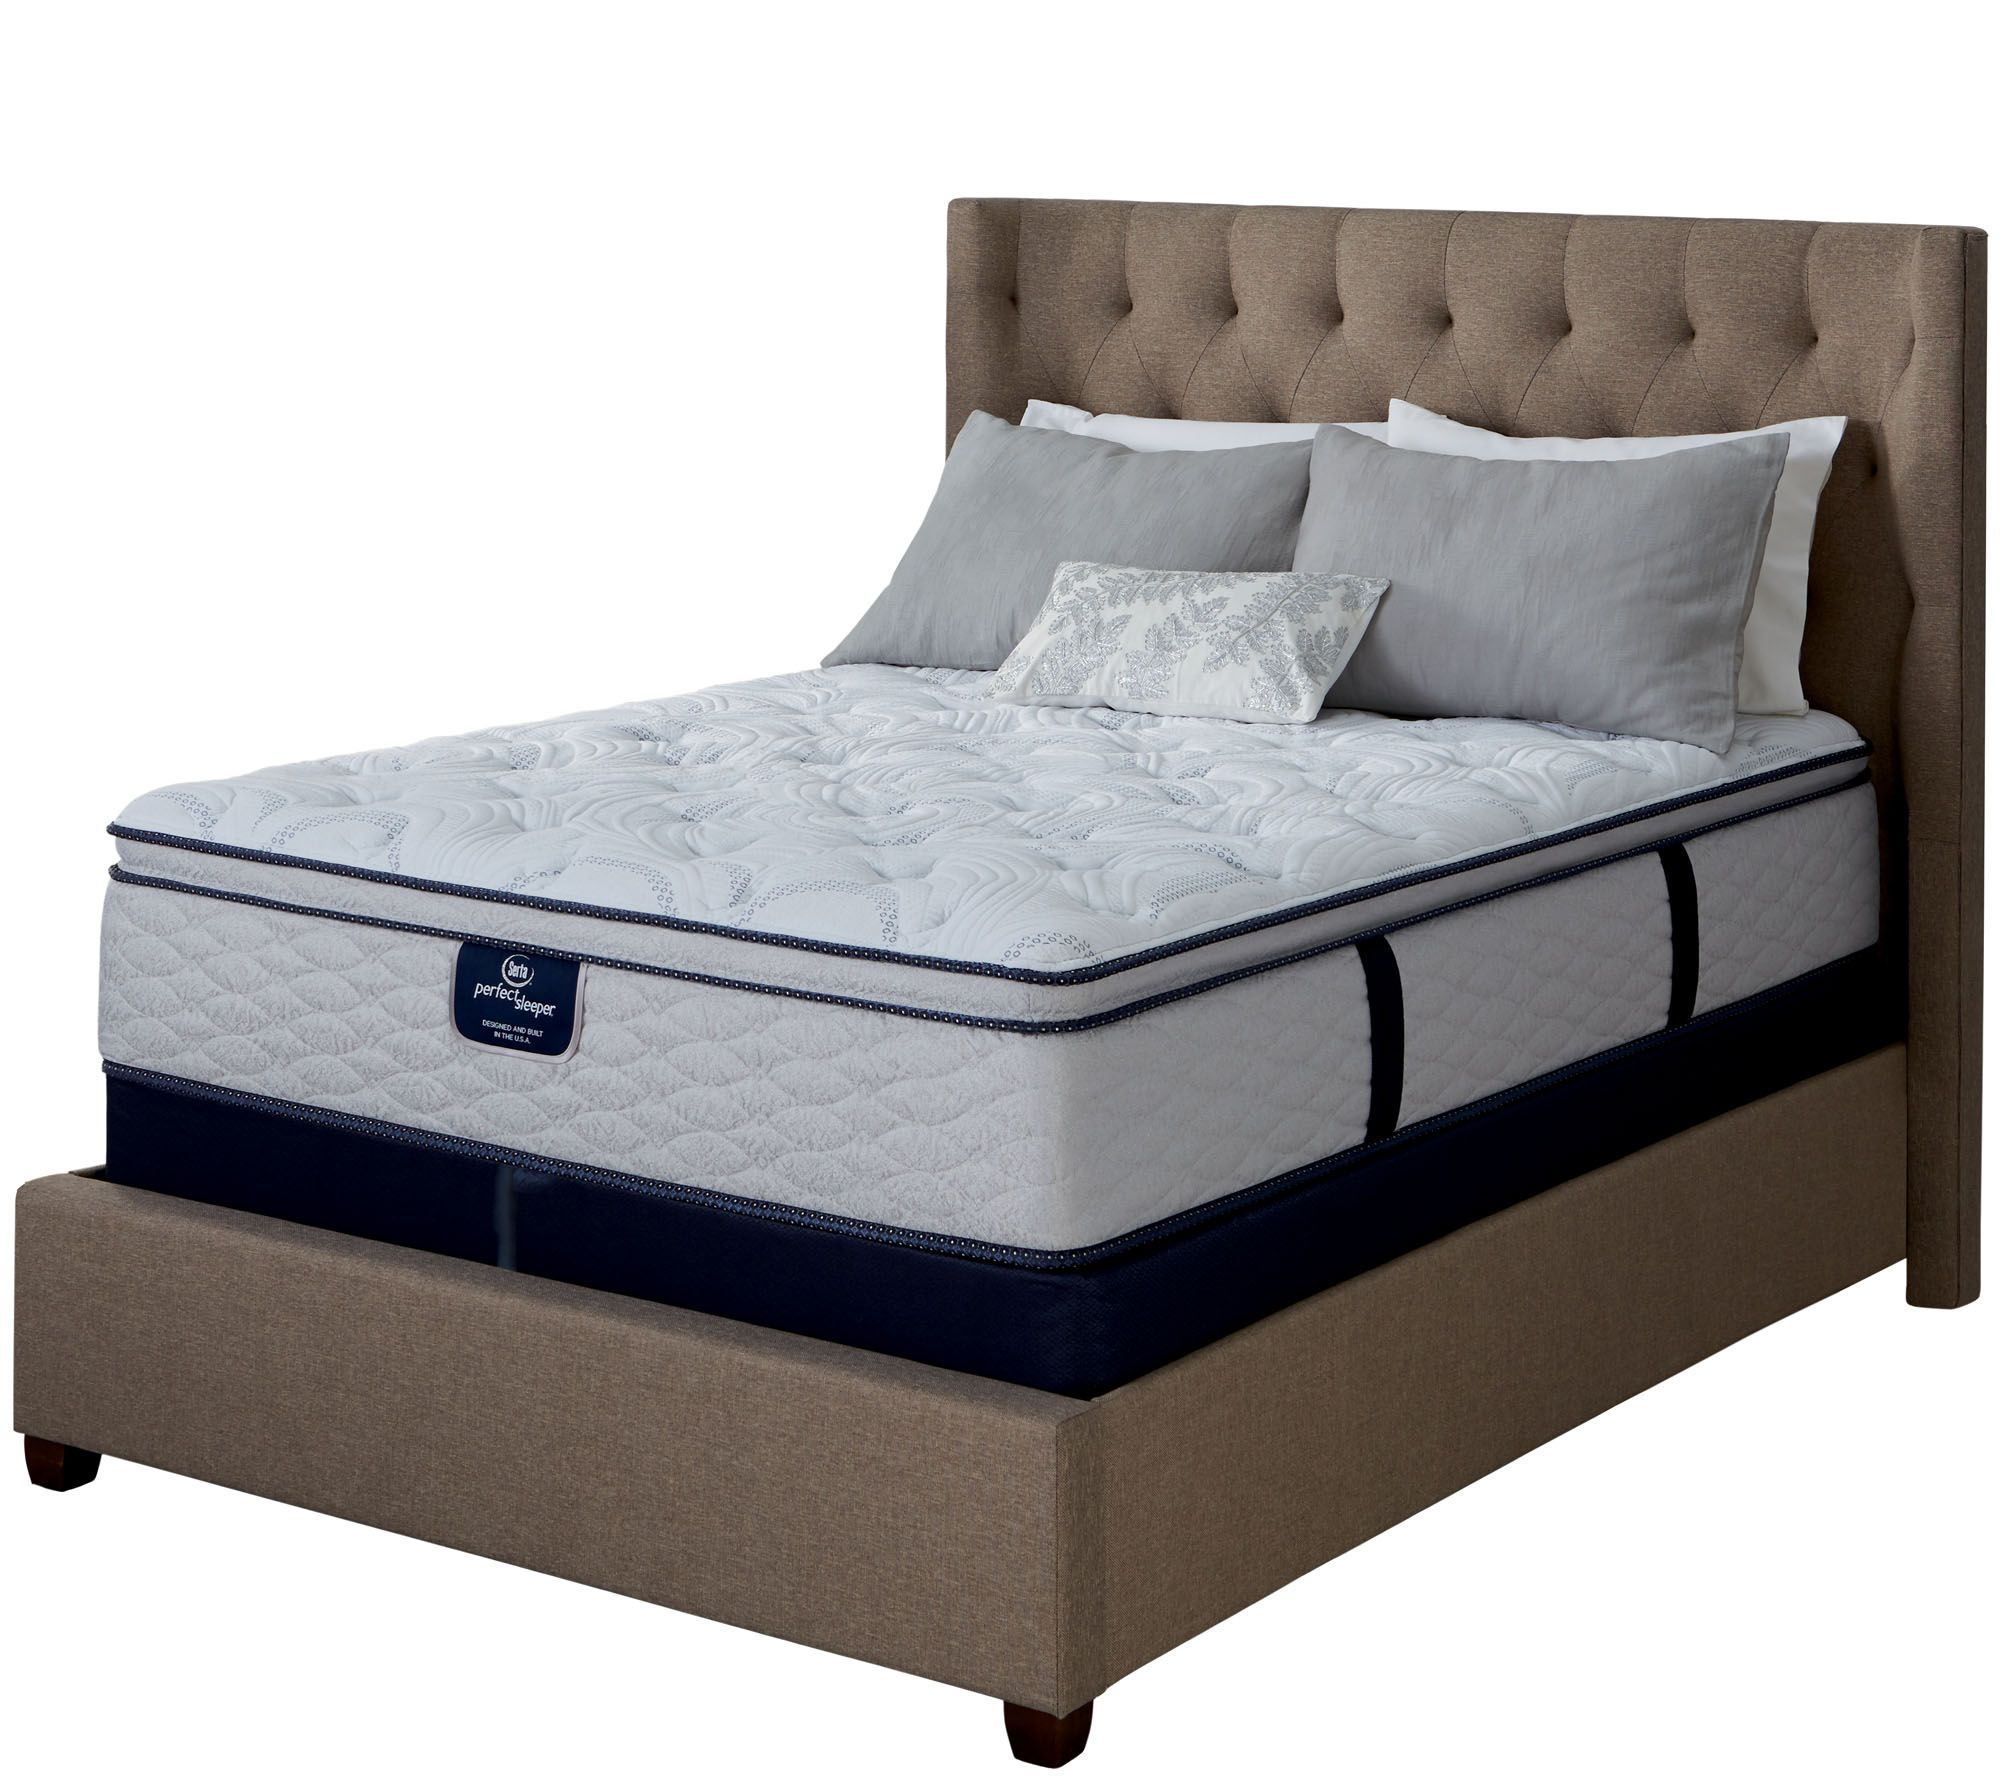 Serta Perfect Sleeper Capriana Eurotop SplitQN Mattress